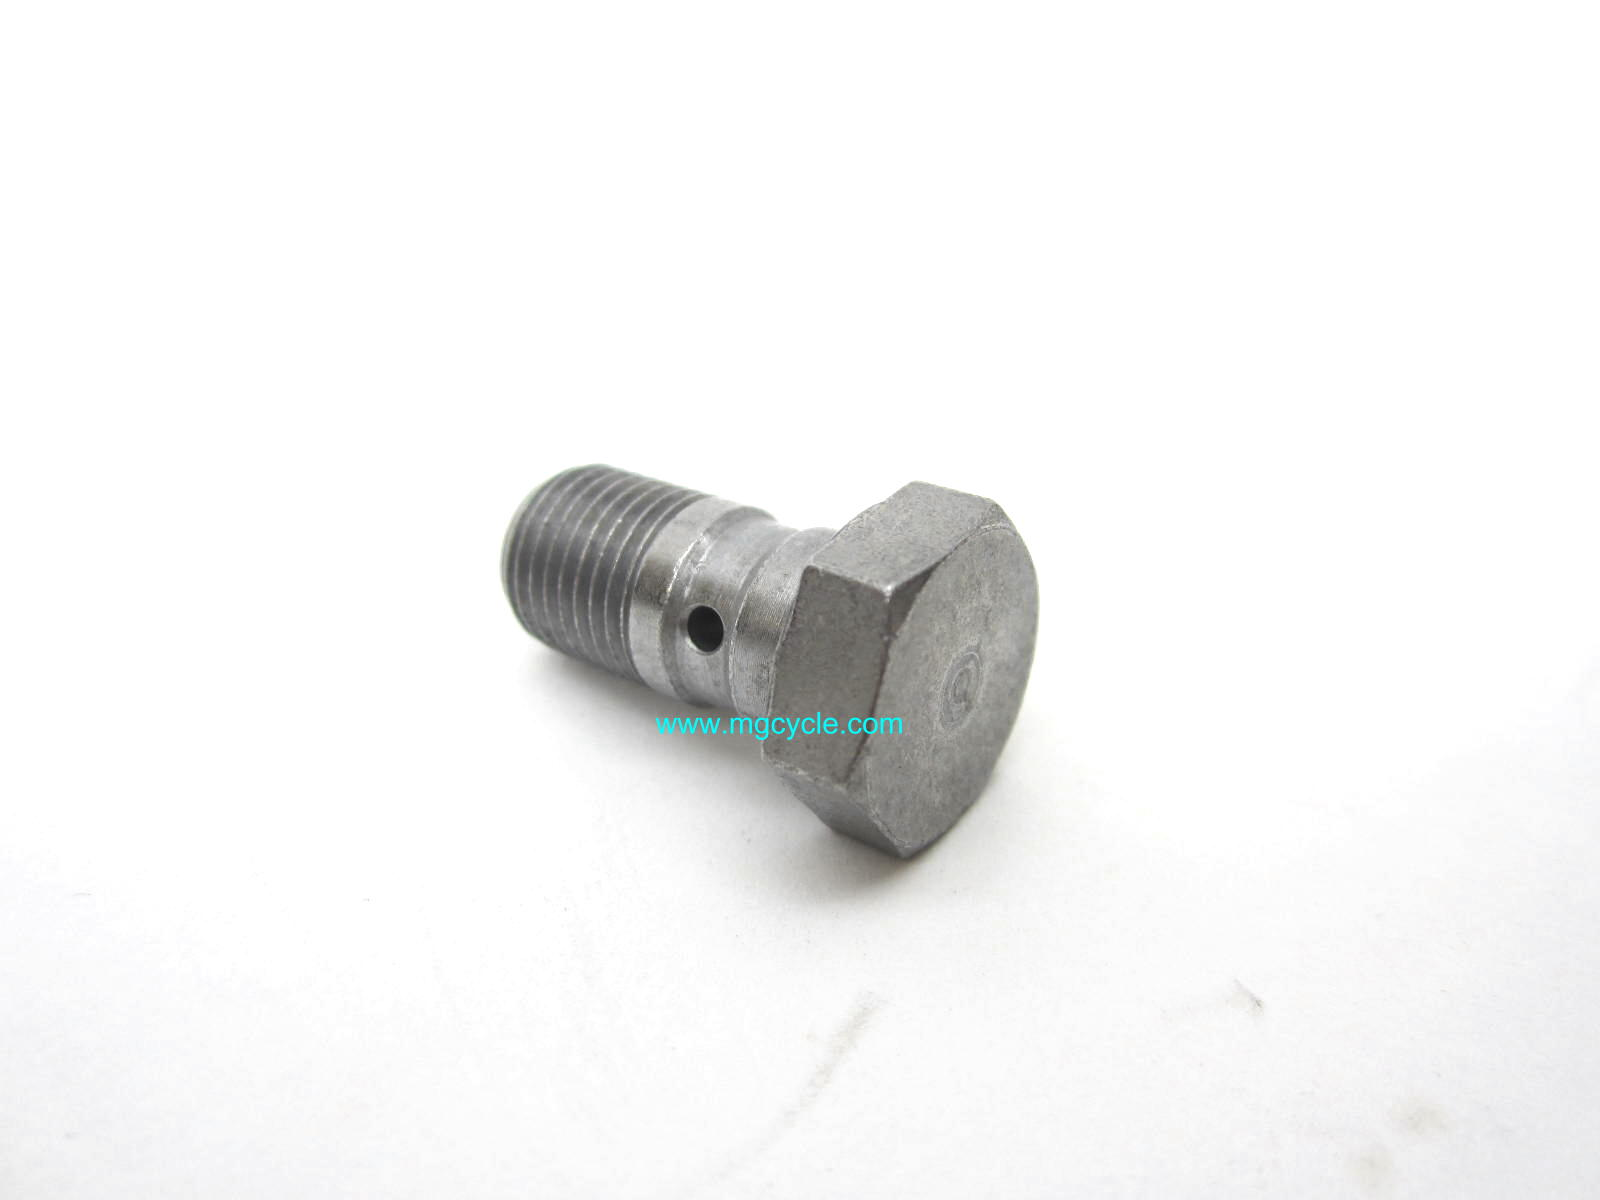 Genuine Brembo steel banjo bolt 10mm x 1.00 pitch